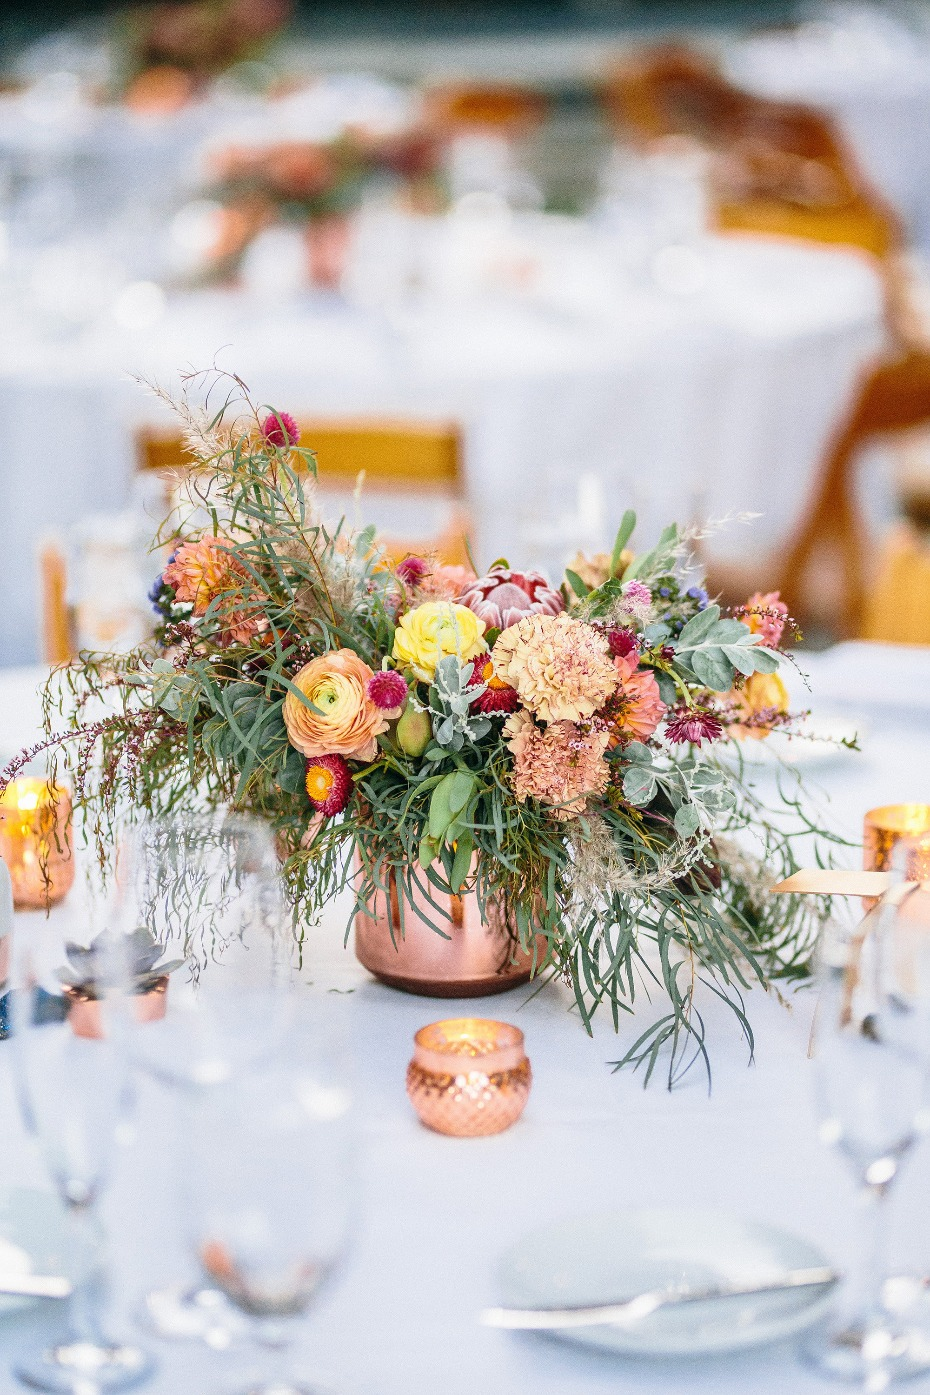 Colorful centerpiece with candles